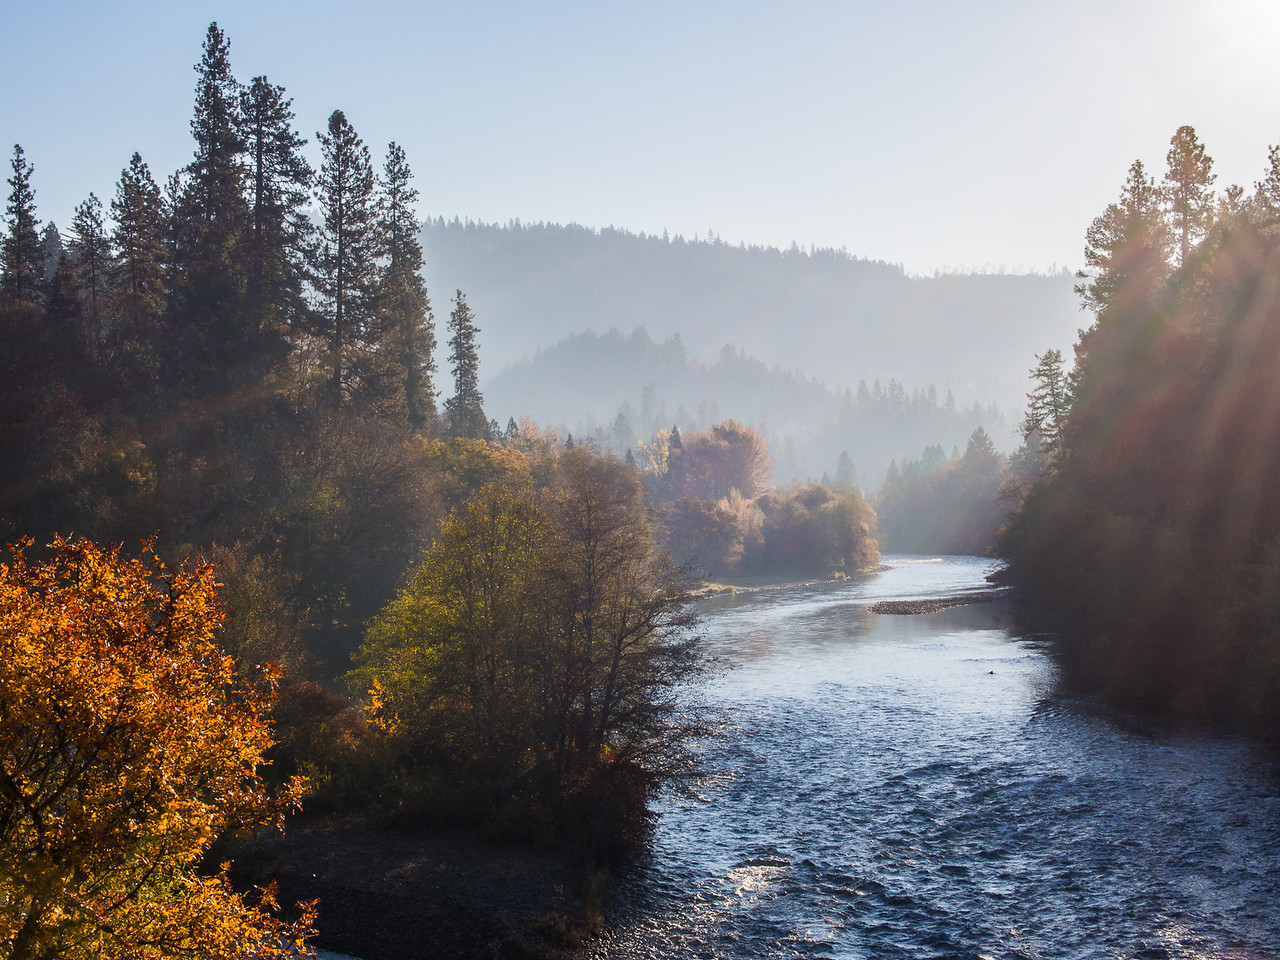 Foggy Morning on the Rogue River in Southern Oregon